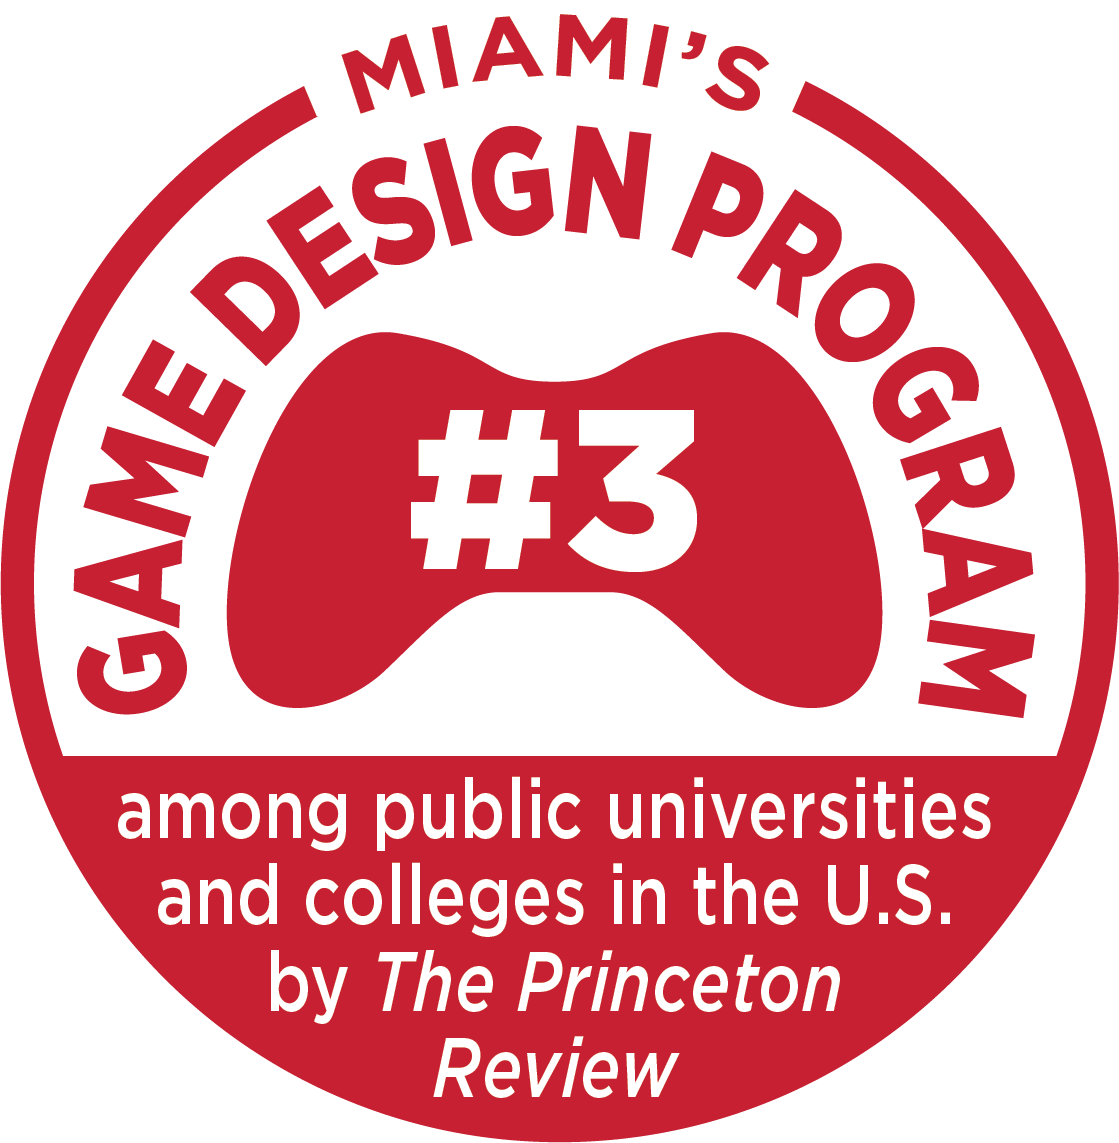 Miami's game design program number 3 among public universities in the U.S. by the Princeton Review